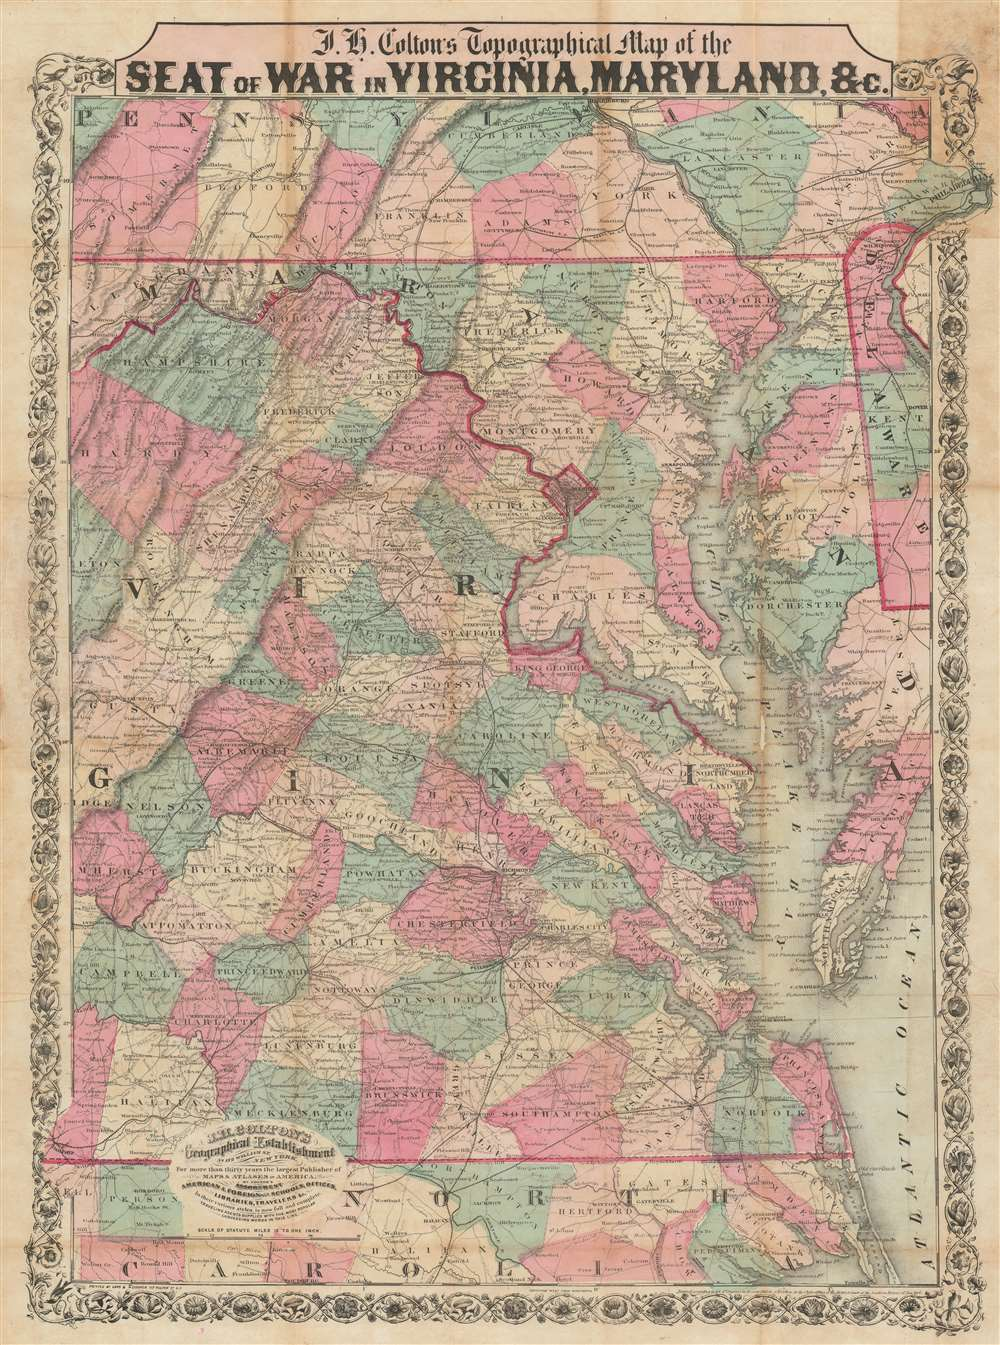 J.H. Colton's Topographical Map of the Seat of War in Virginia, Maryland, etc. - Main View